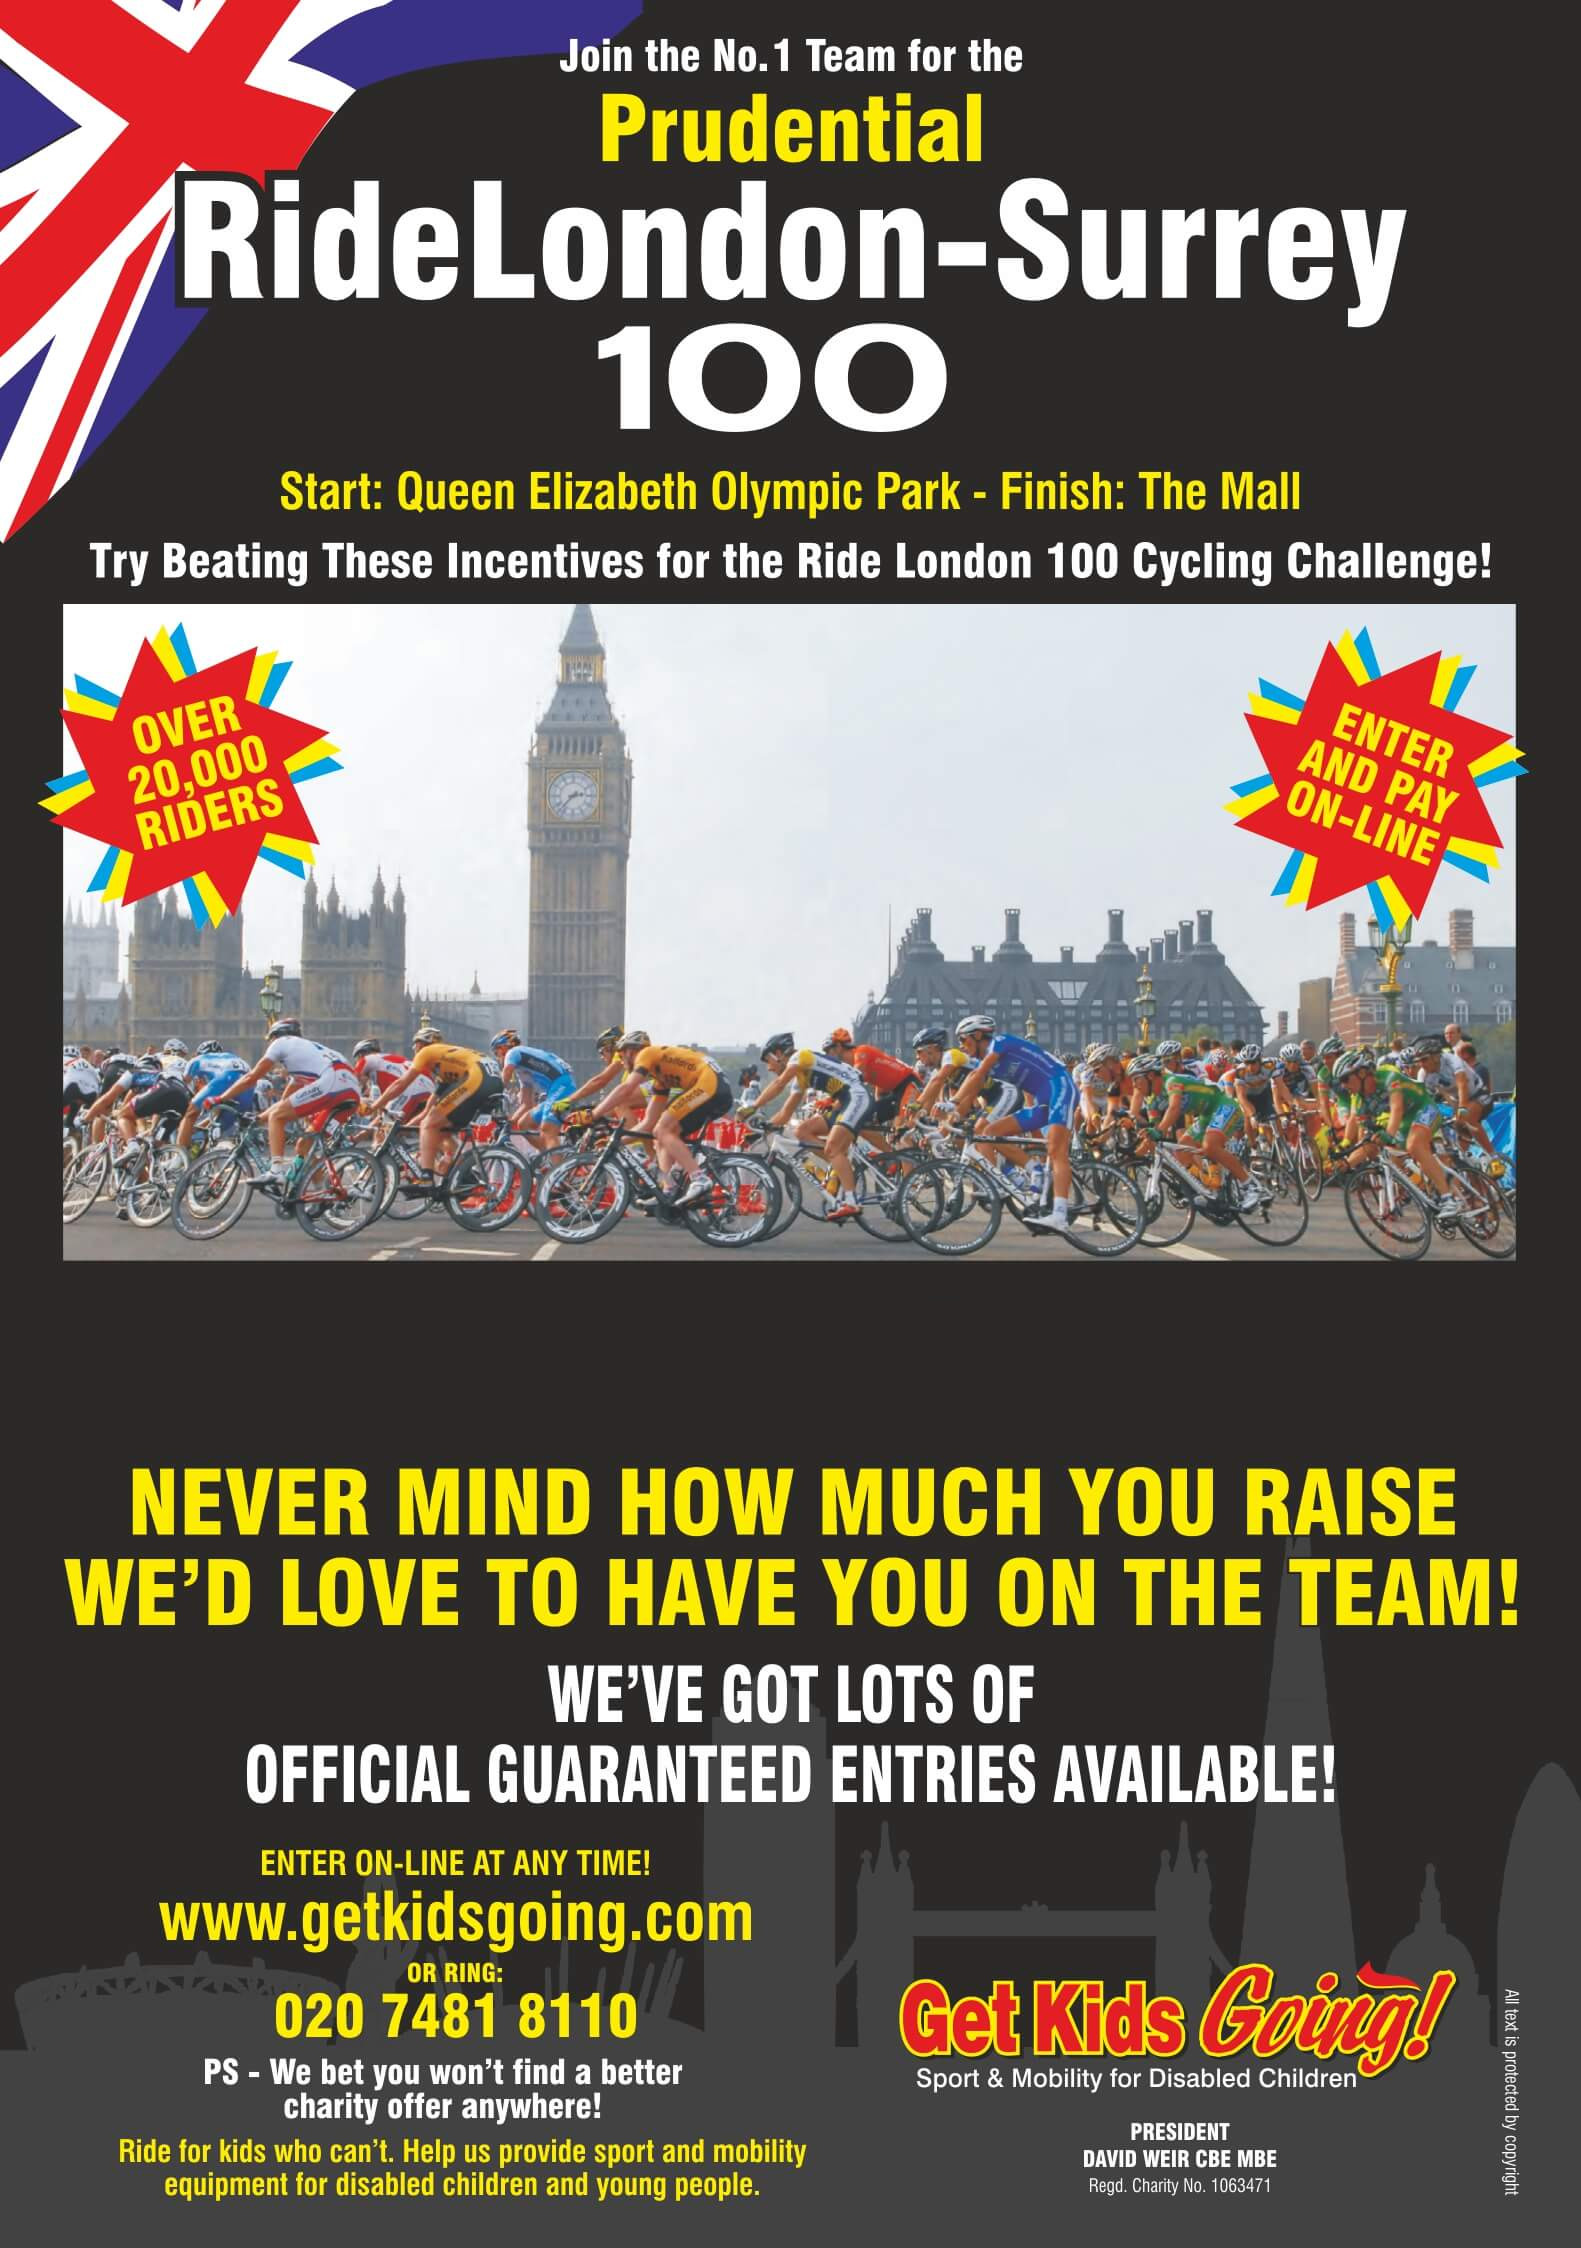 Join the No. 1 Team. Ride London Cycling Challenge 2017. Try Beating These Incentives for the Ride London Cycling Challenge. Never mind how much you raise. We'd love to have you on the team! We've got lots of guaranteed entries available!